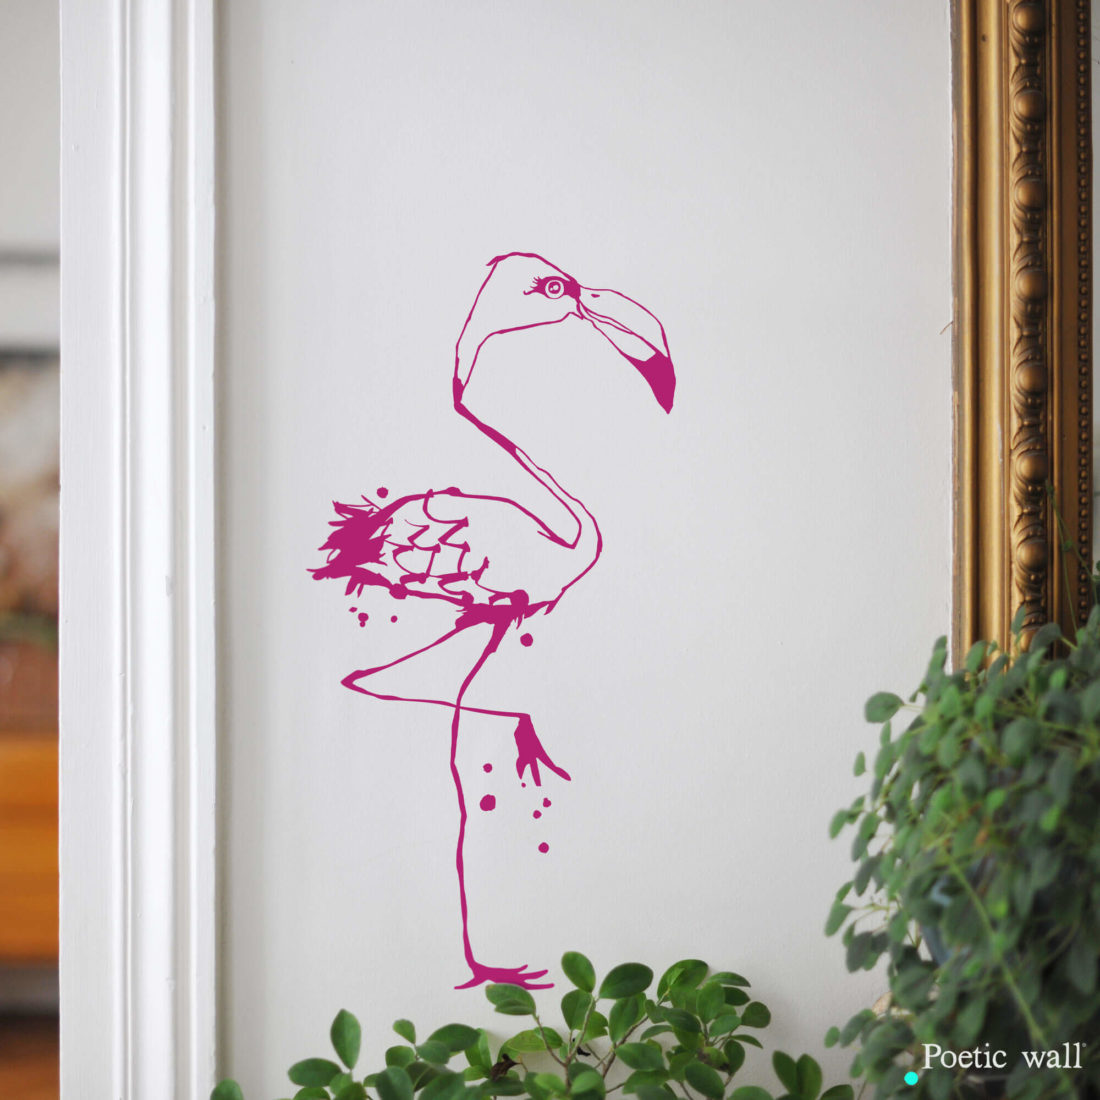 Sticker dessin Le Flamant Rose Poetic Wall